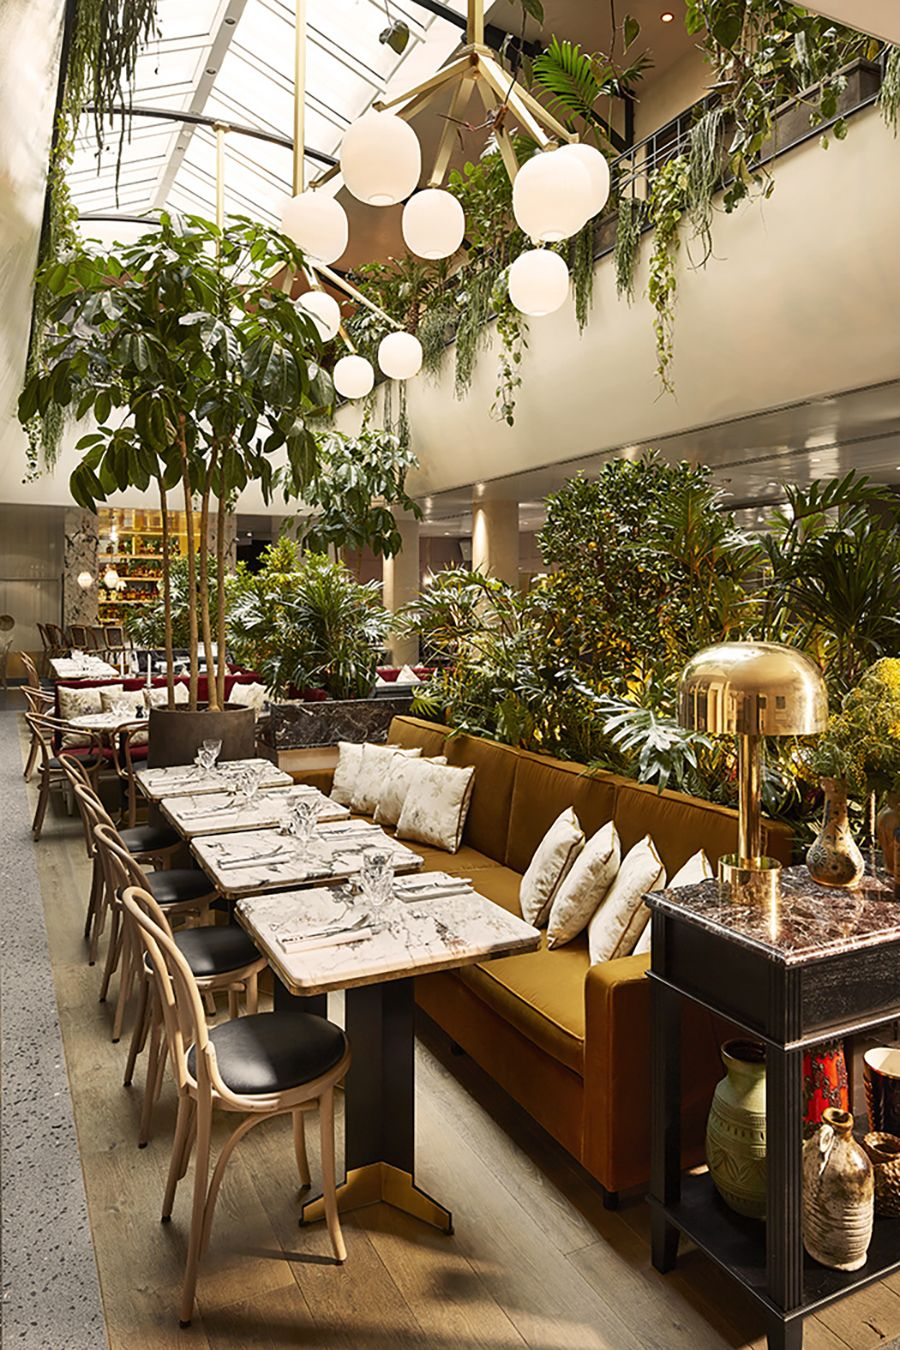 Enjoyable Green Is In All Day Dining Restaurant Interior Design Download Free Architecture Designs Scobabritishbridgeorg